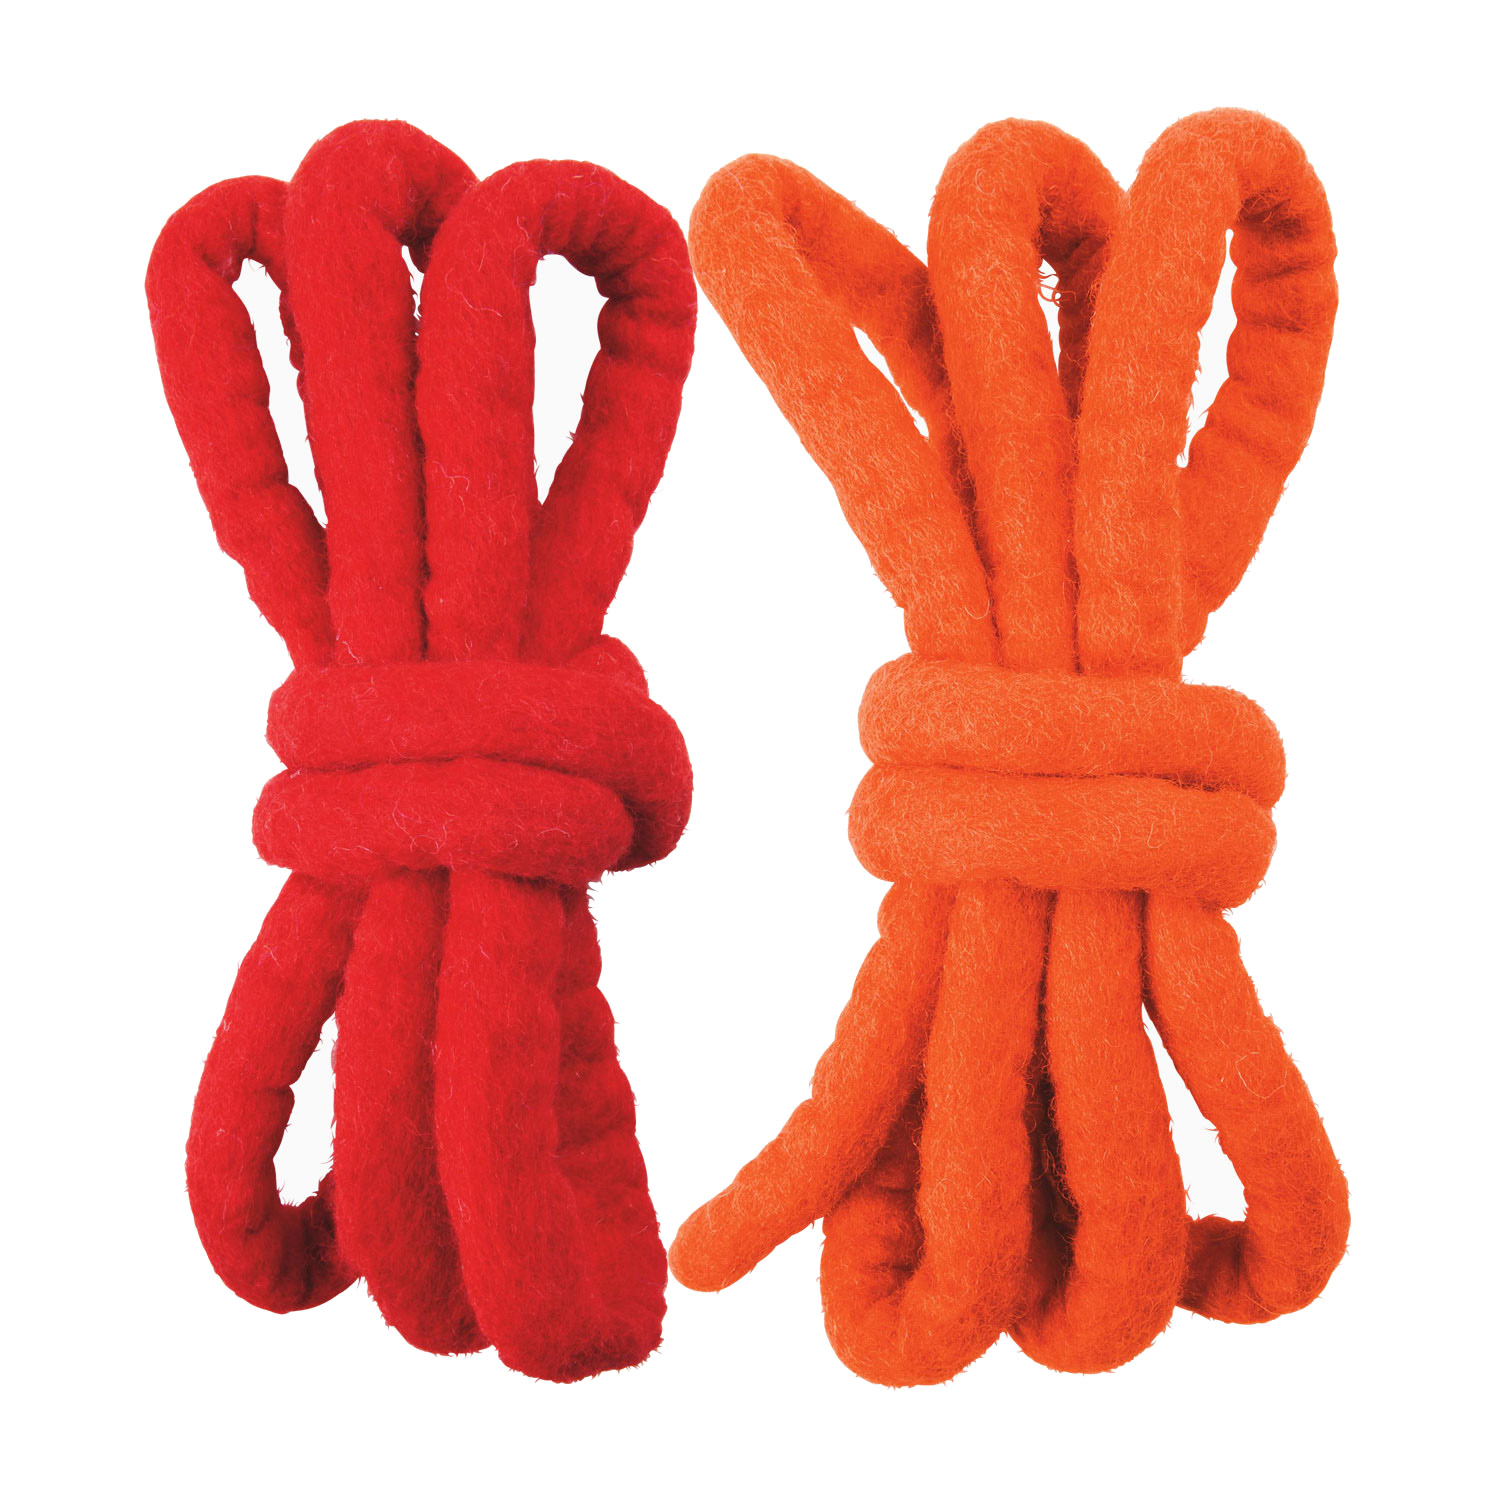 Woolfelt Cords in Red and Orange